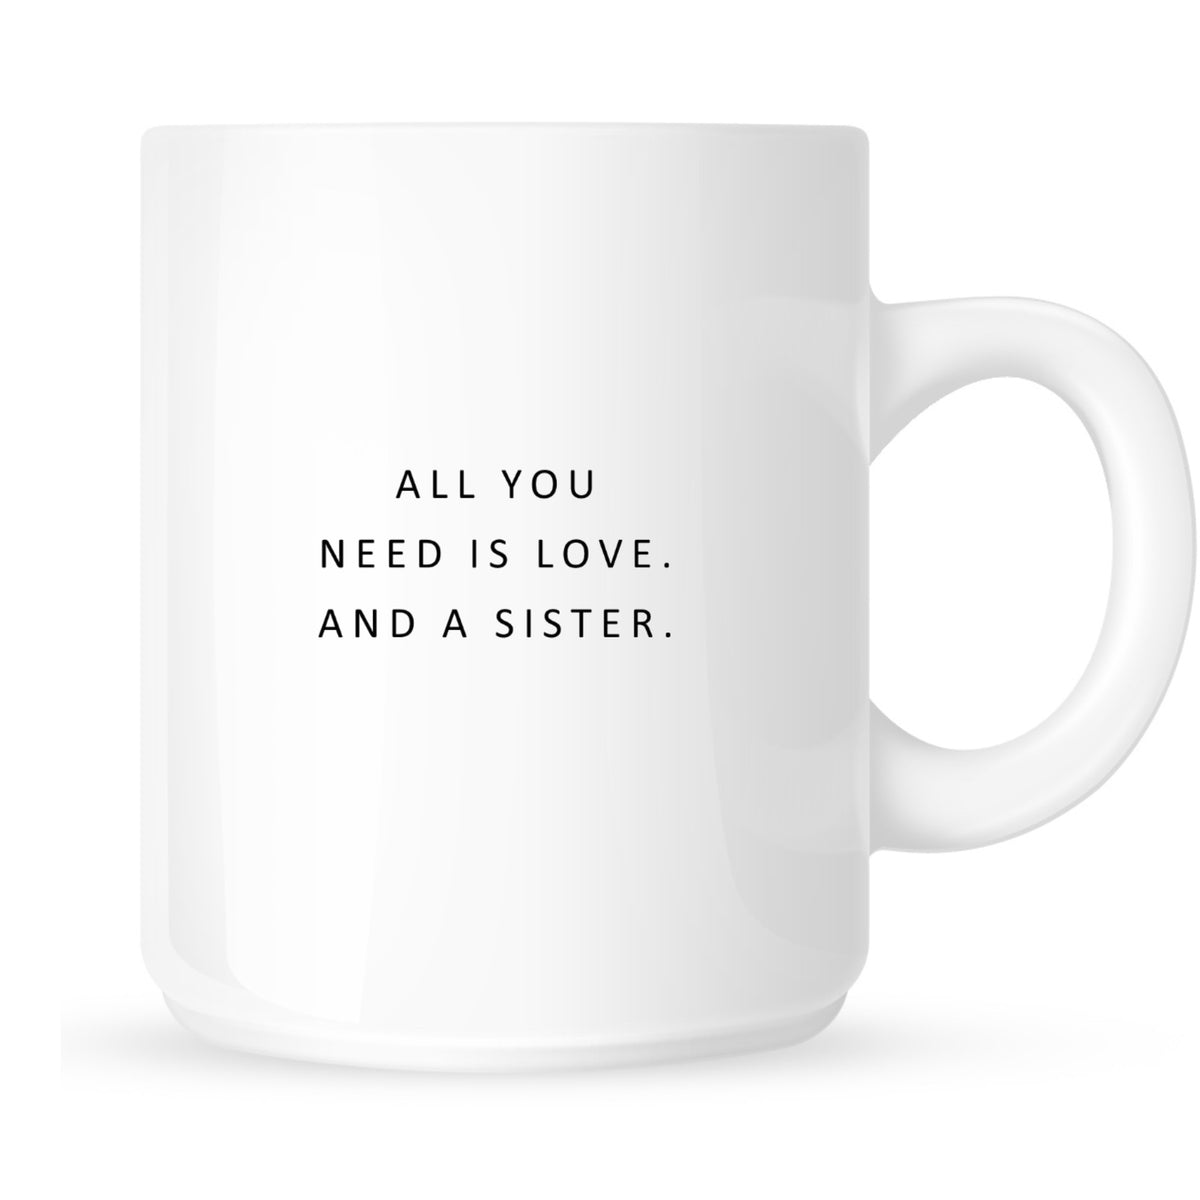 Mug - All You Need is Love and a Sister